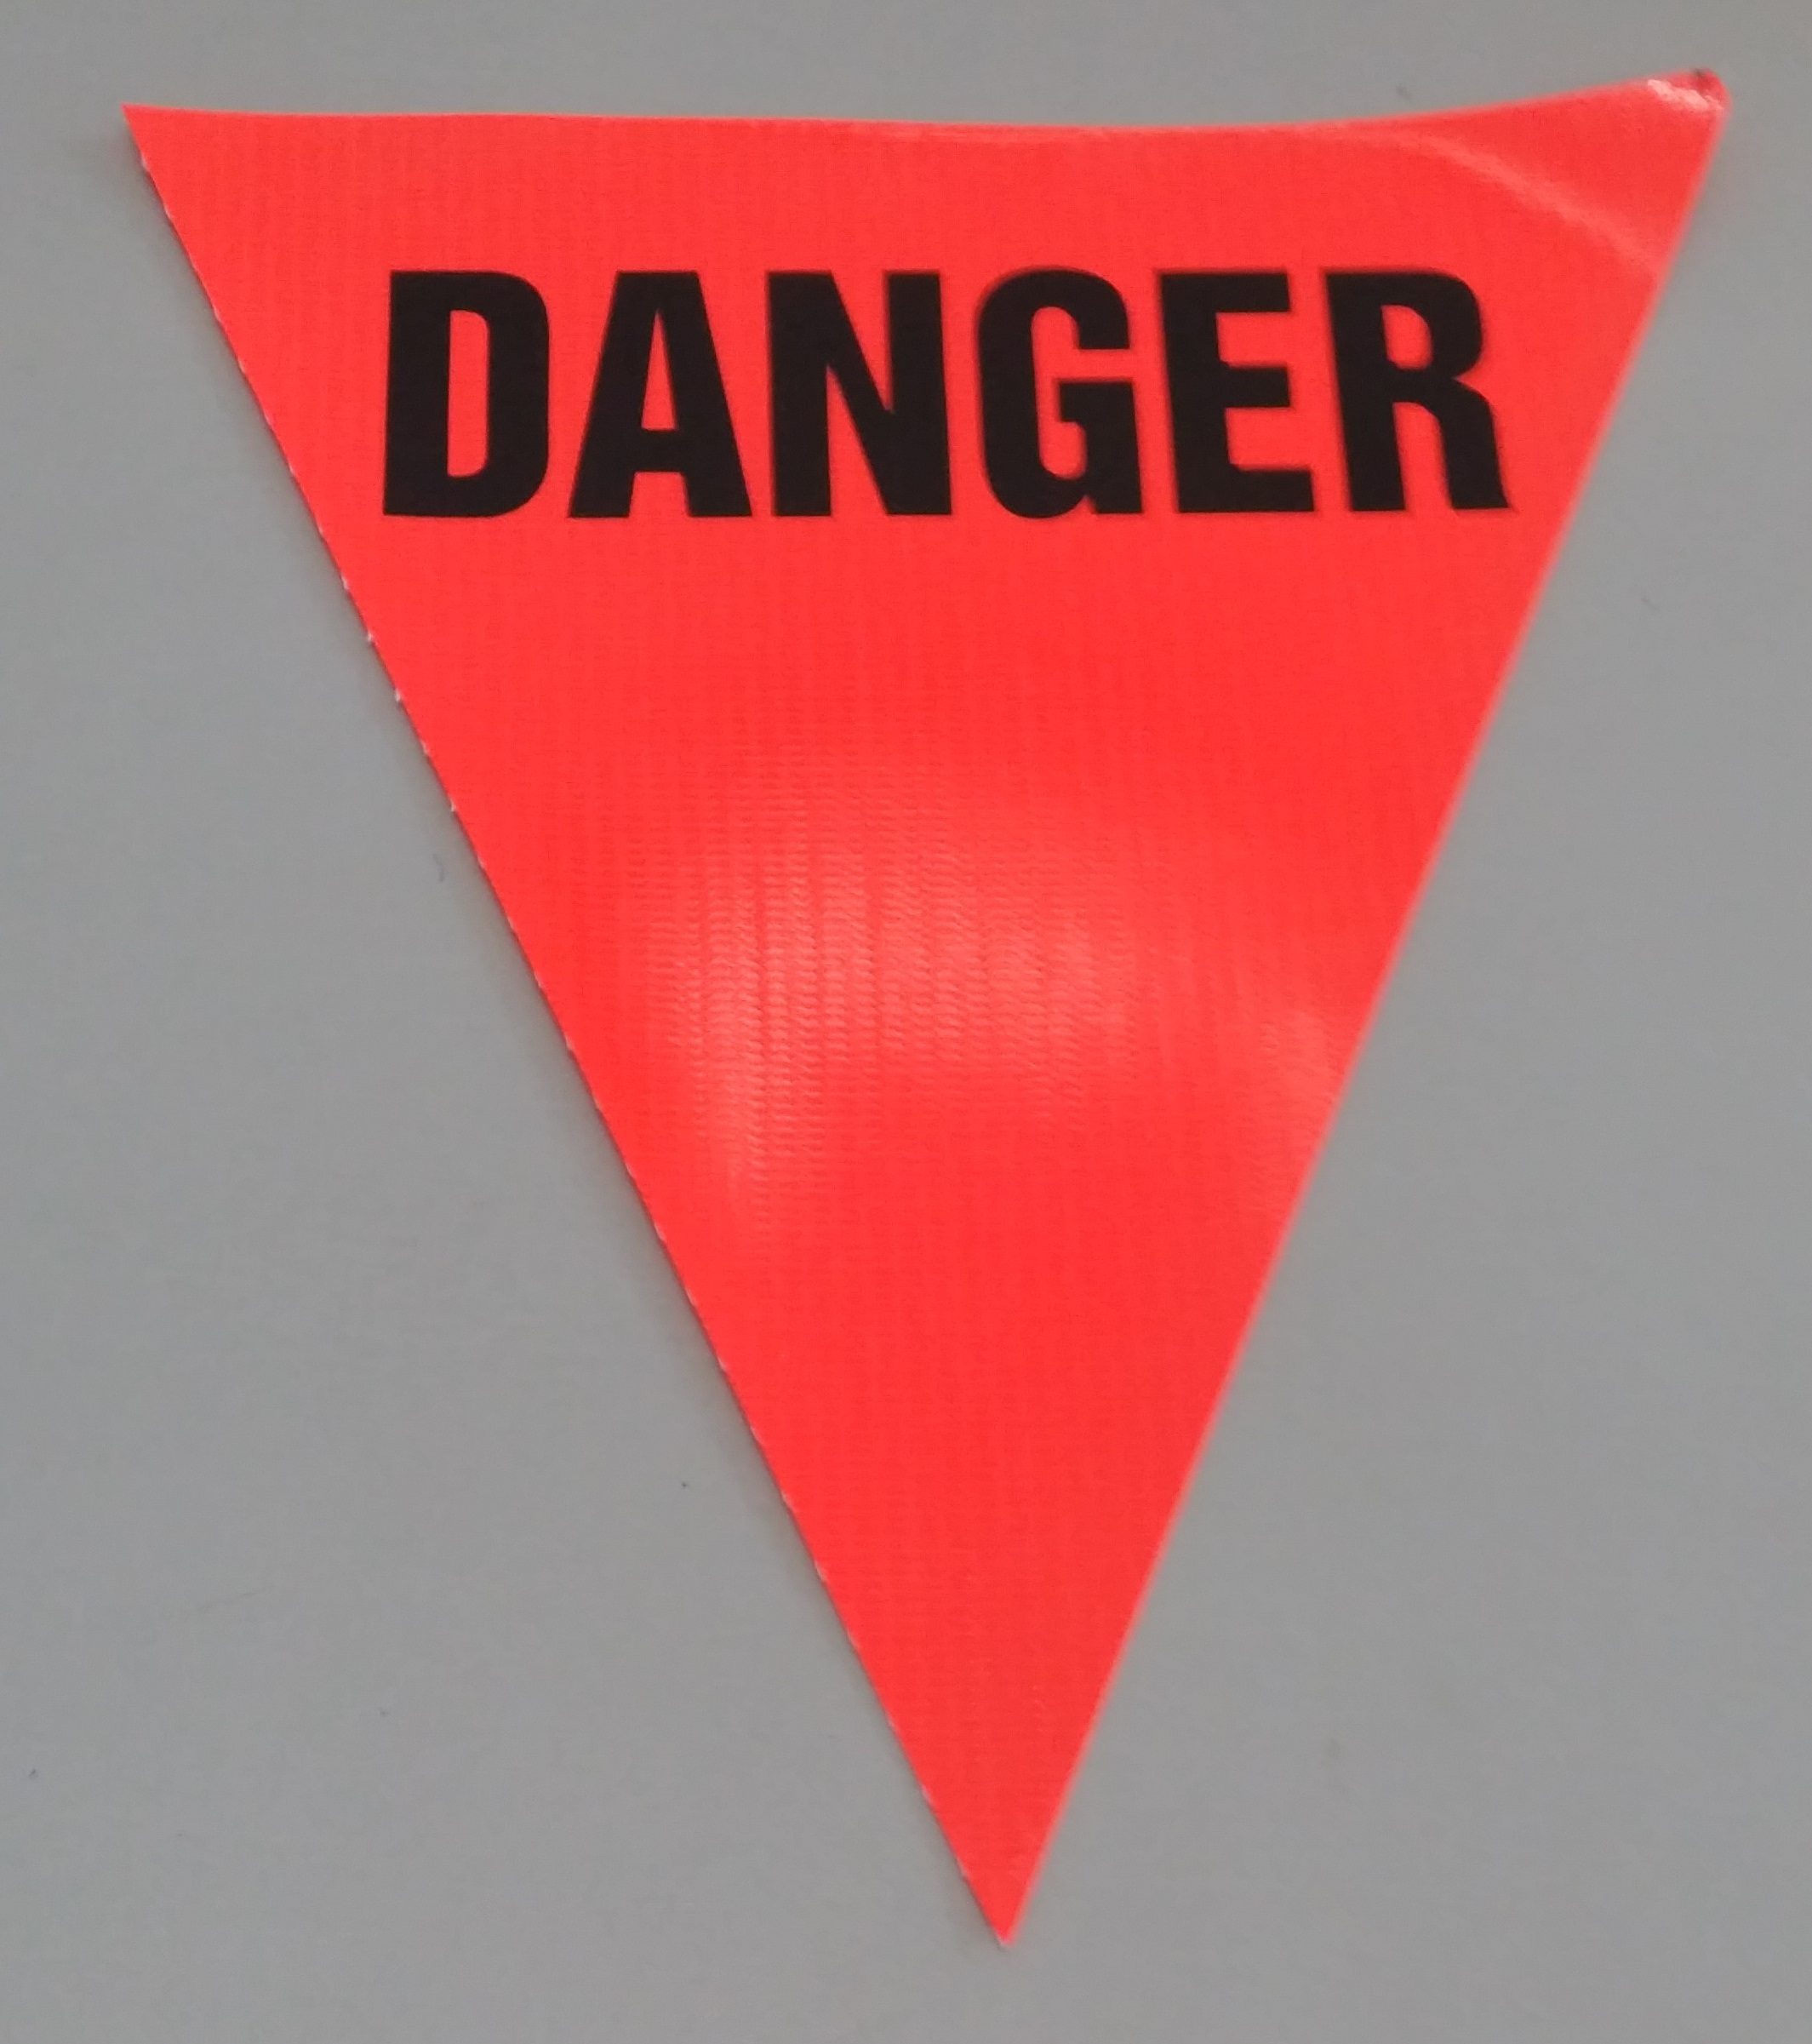 Danger (orange)